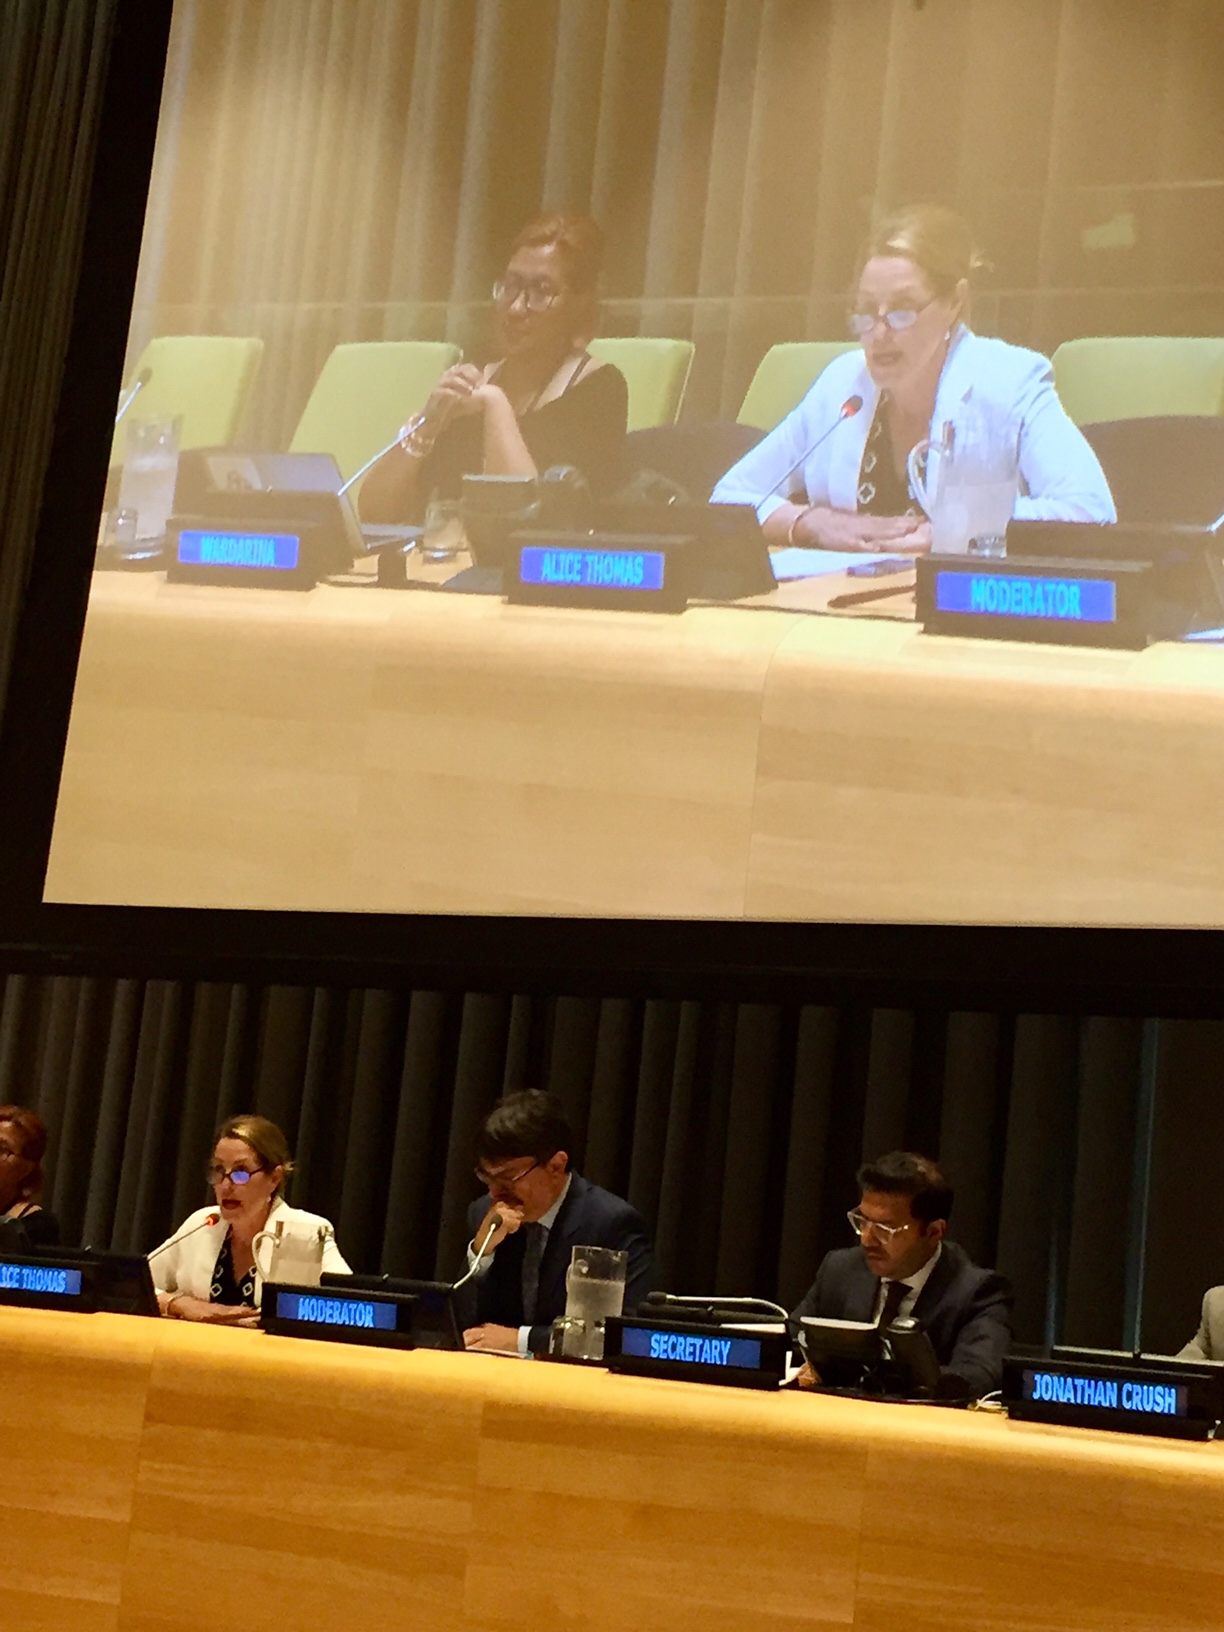 Alice Thomas speaks at the United Nations in New York City during the Global Compact negotiations.